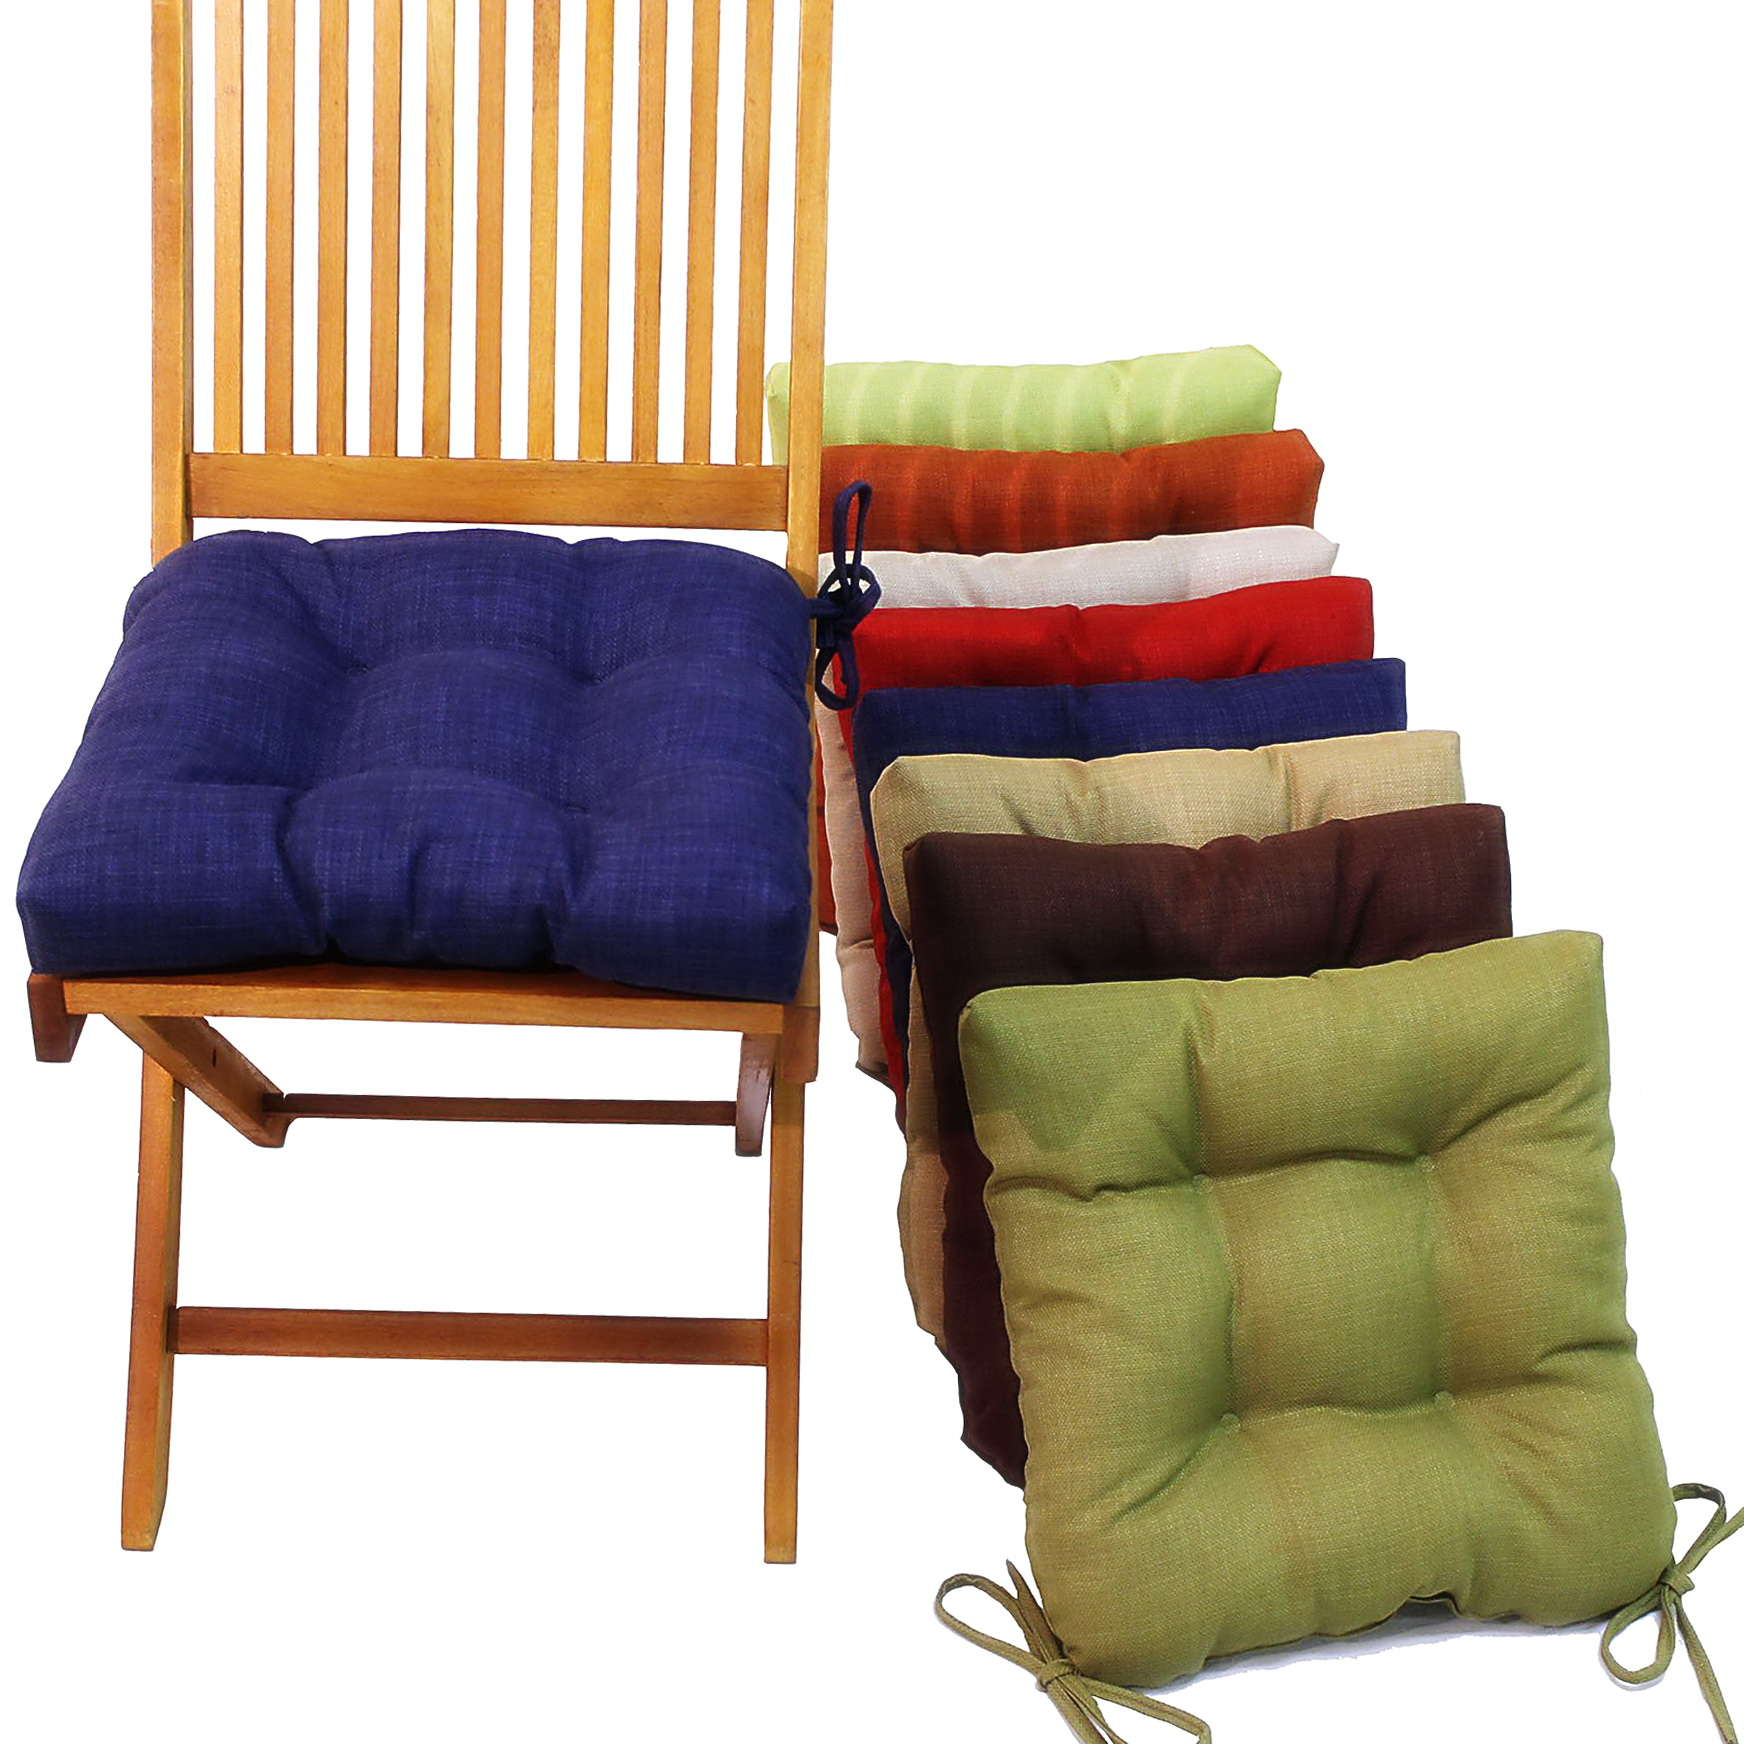 Kitchen Chair Cushions With Ties Kitchen Chair Seat Cushions And Back Country Style Tie On